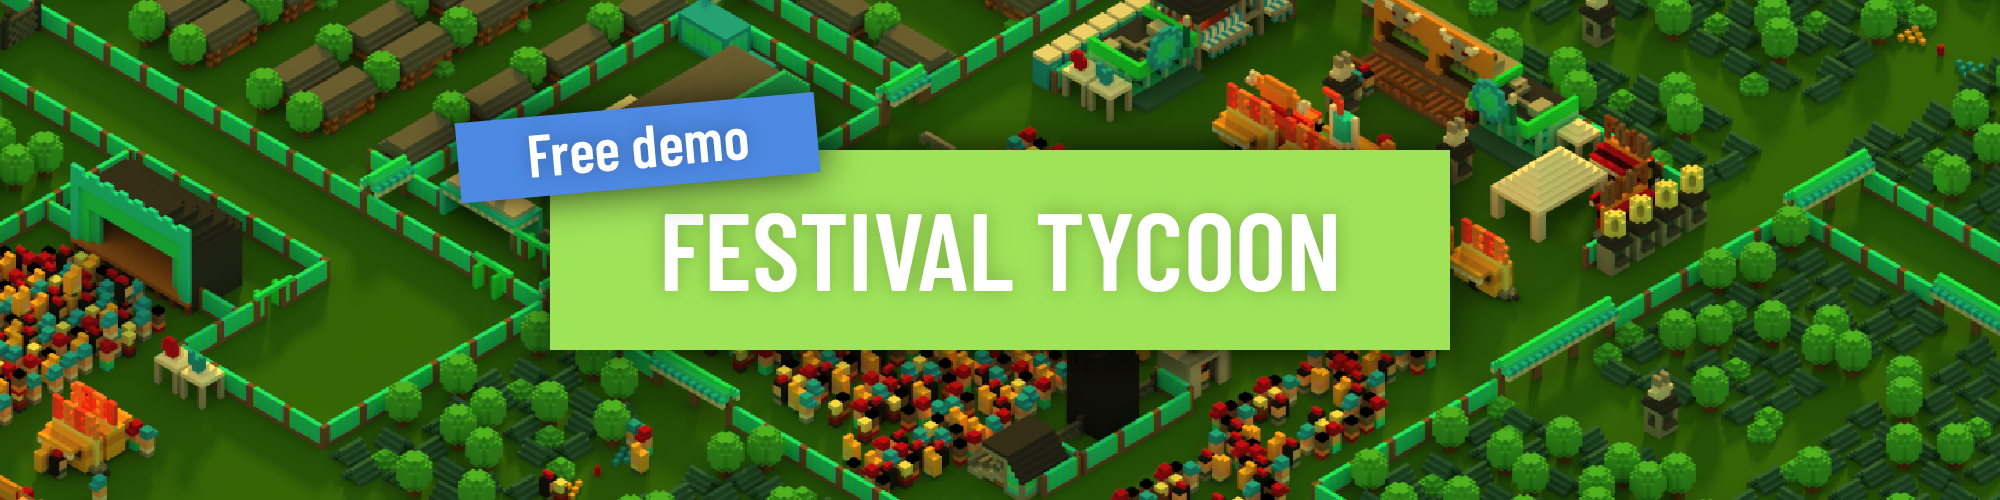 Festival Tycoon Demo